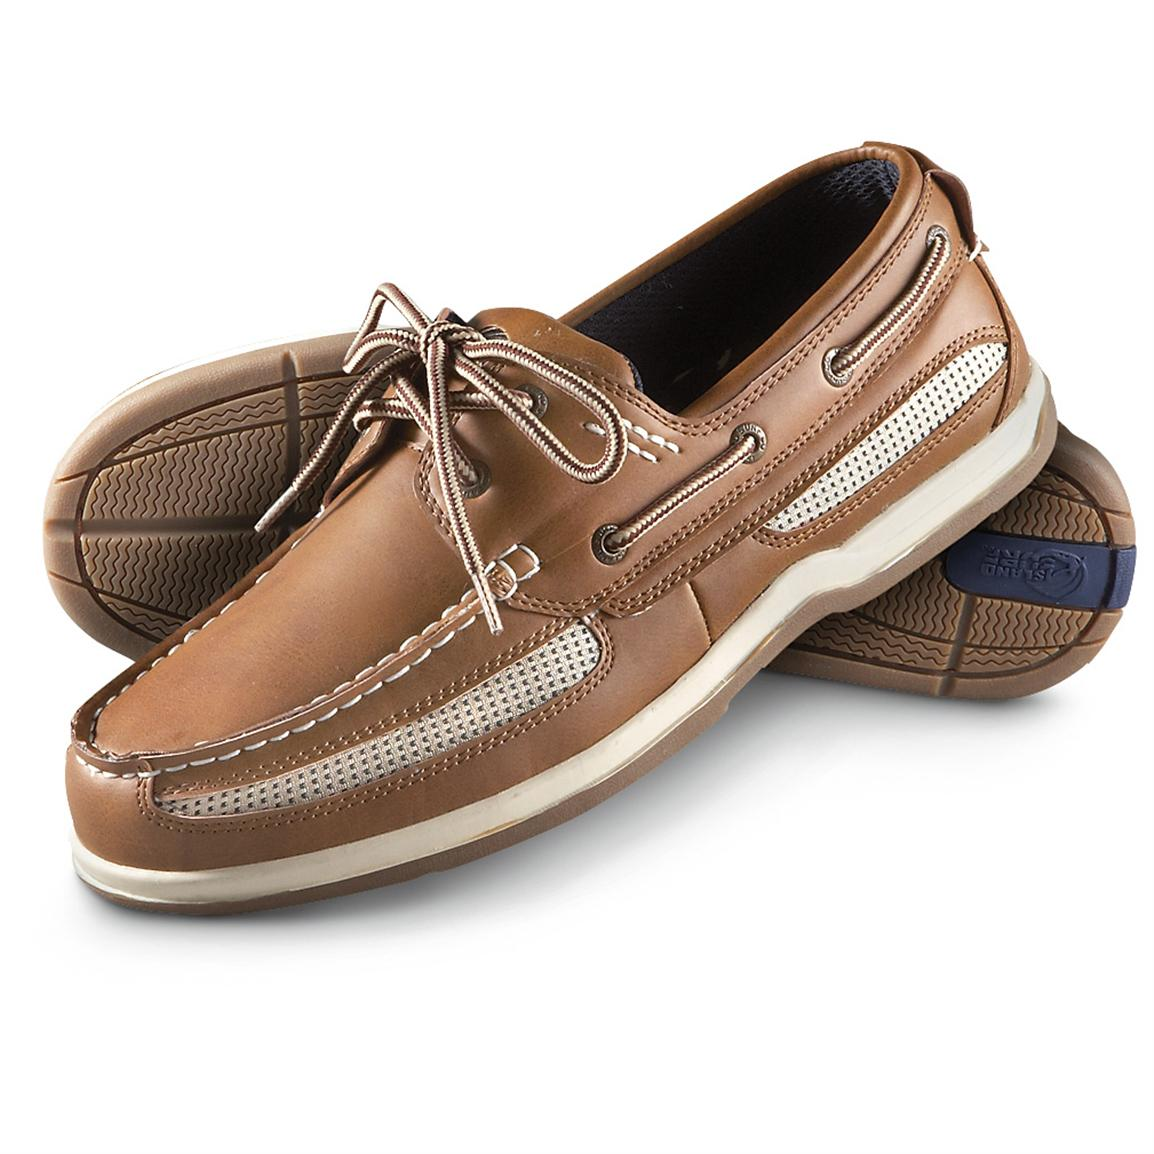 Men's Island Surf® Cod Boat Shoes, Tan